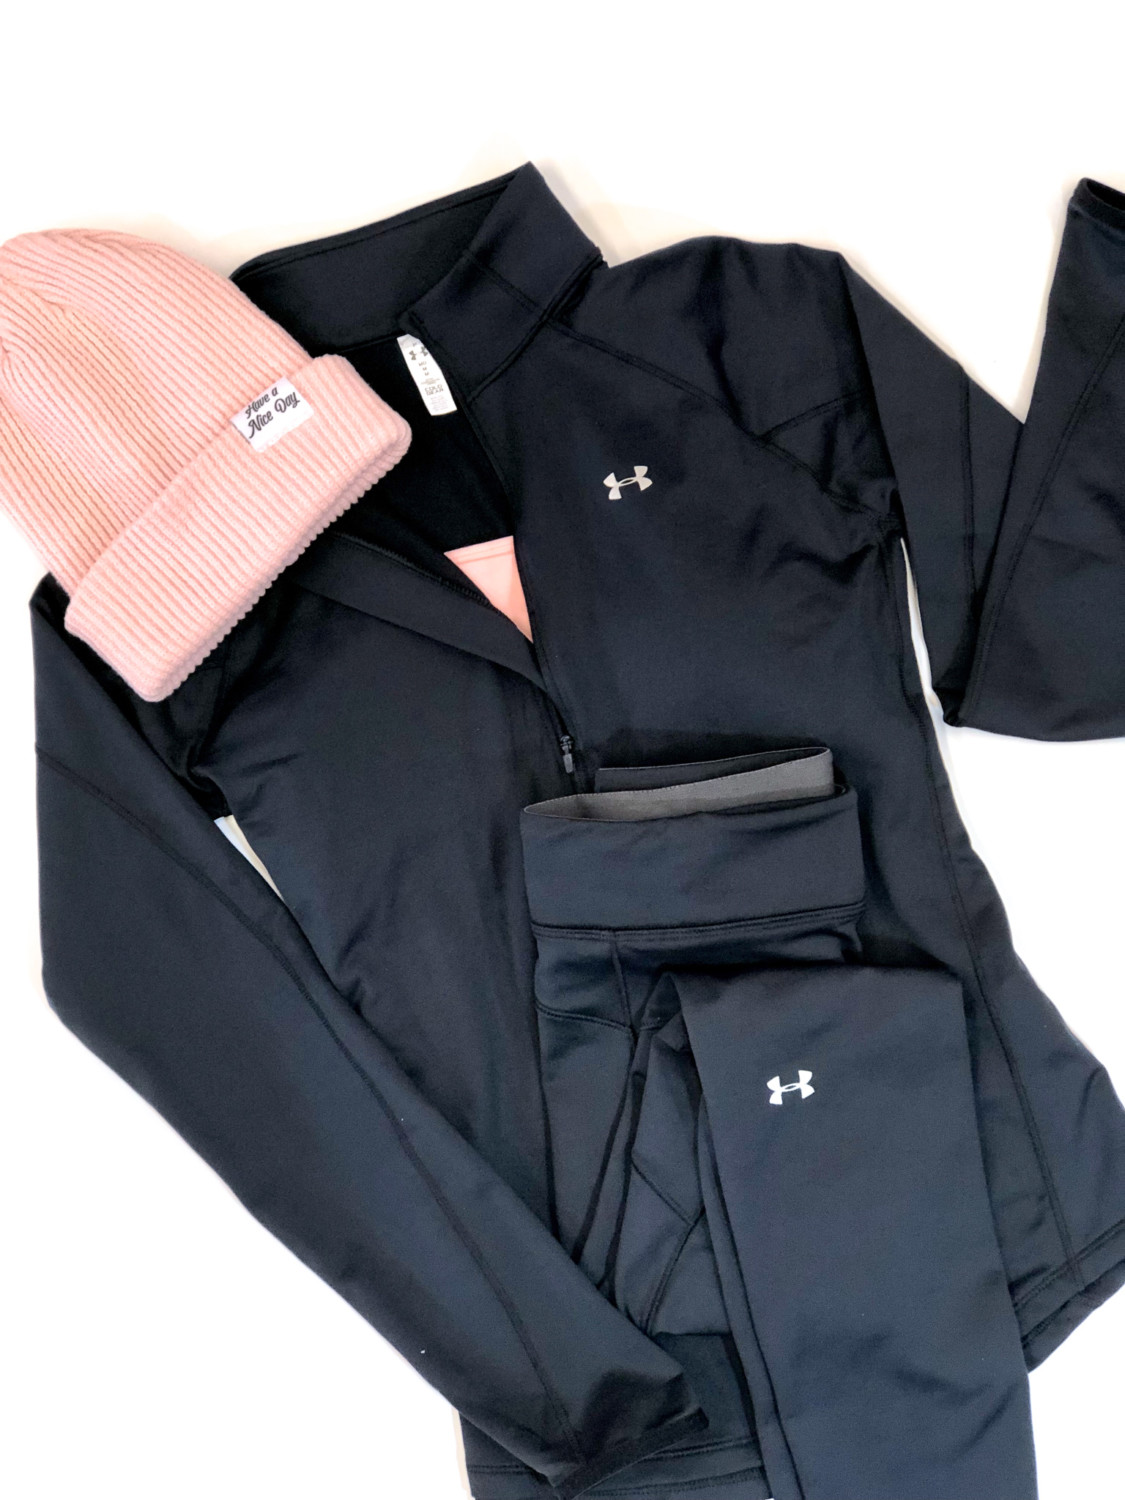 Under Armour Pants – Original Retail: $70, CWS: $20